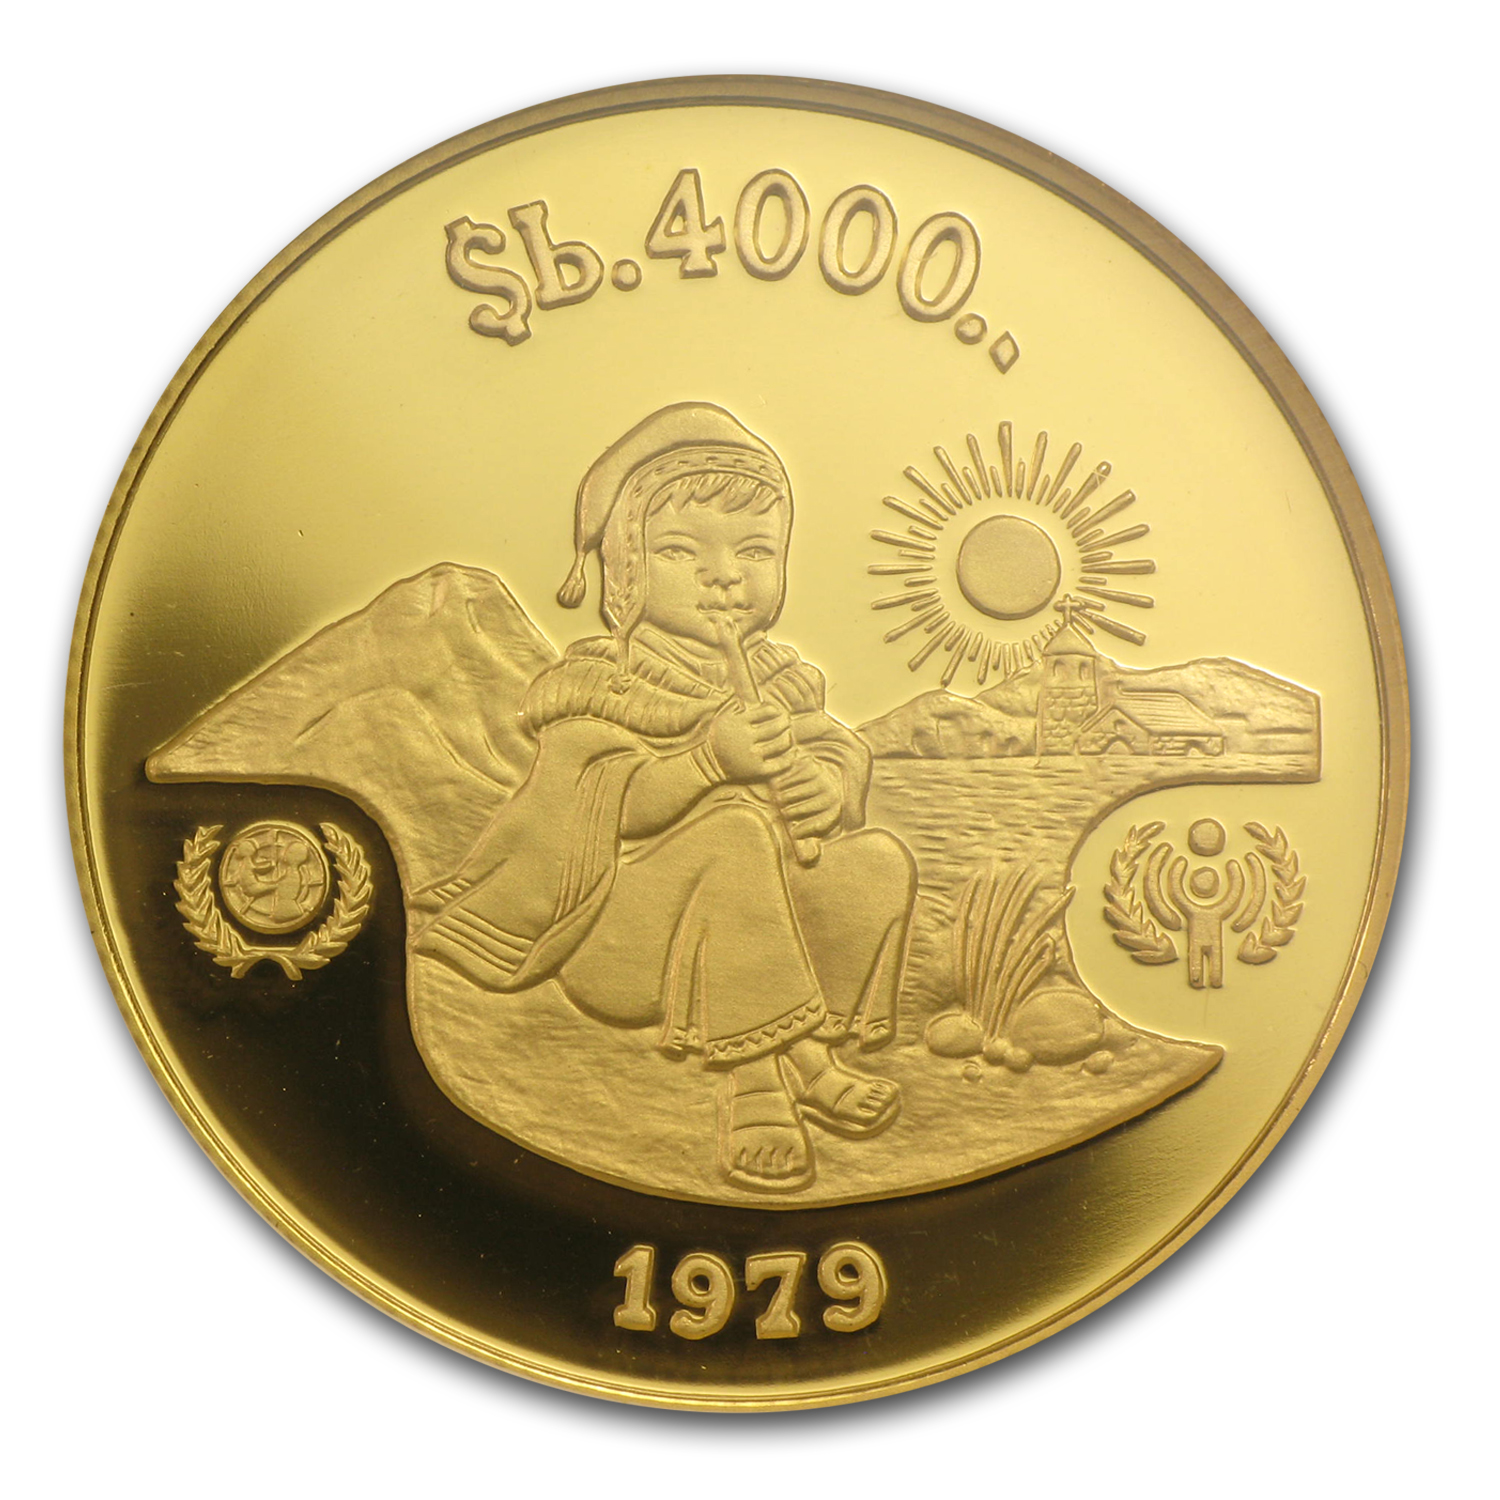 Bolivia 1979 4,000 Pesos Bolivianos Gold Proof - Year of Child